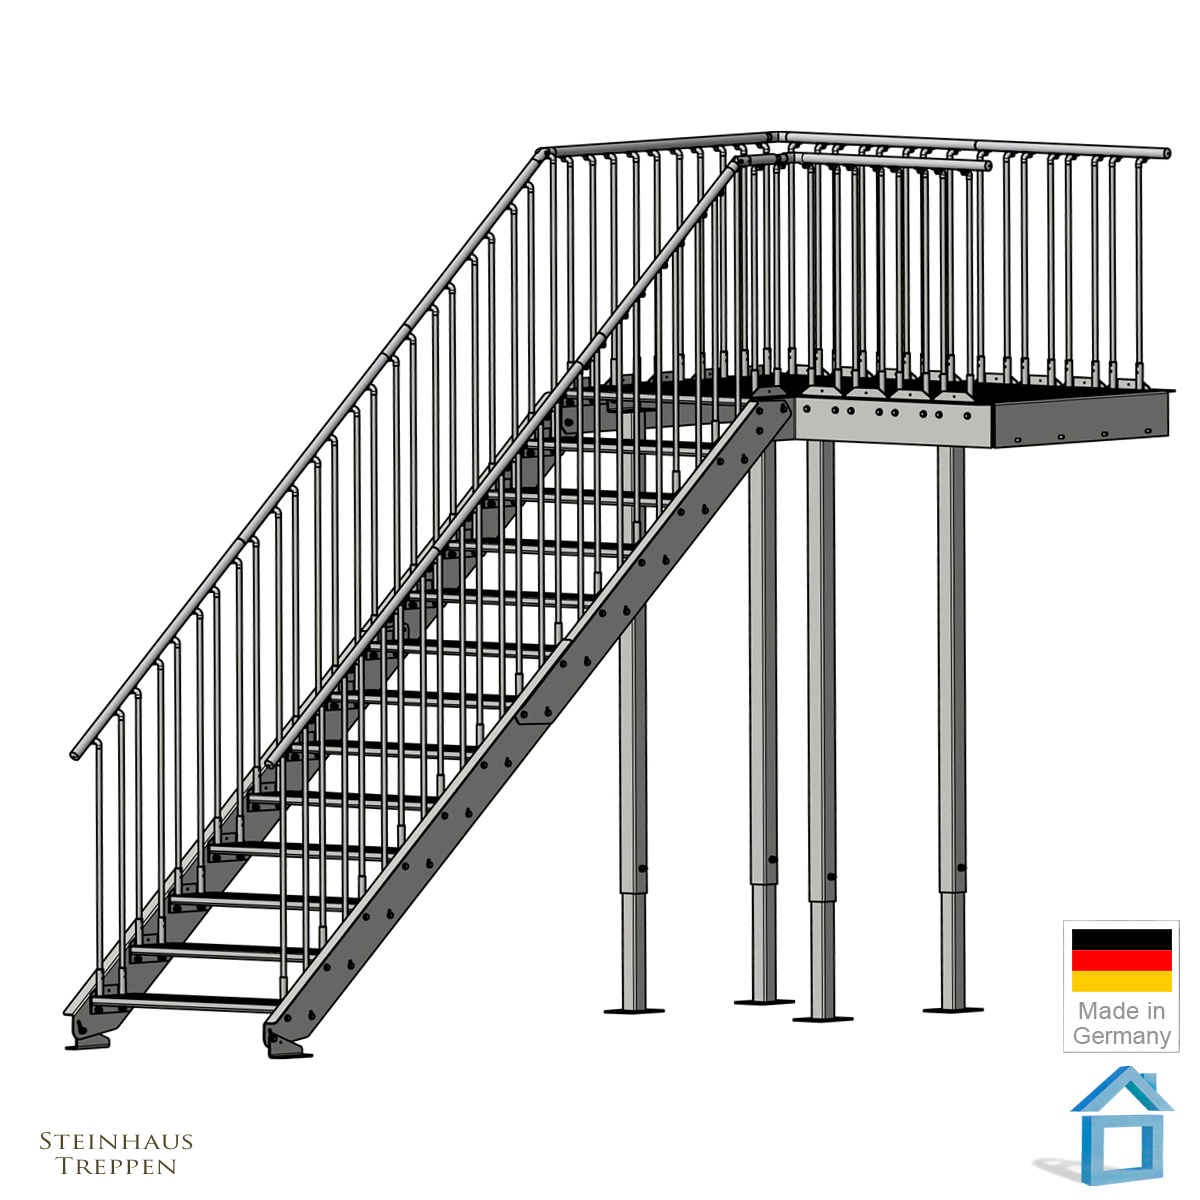 treppenpodest gh 240 cm bis 320 cm mit bergang stahl br cke 100 x 216 cm steinhaus treppen. Black Bedroom Furniture Sets. Home Design Ideas